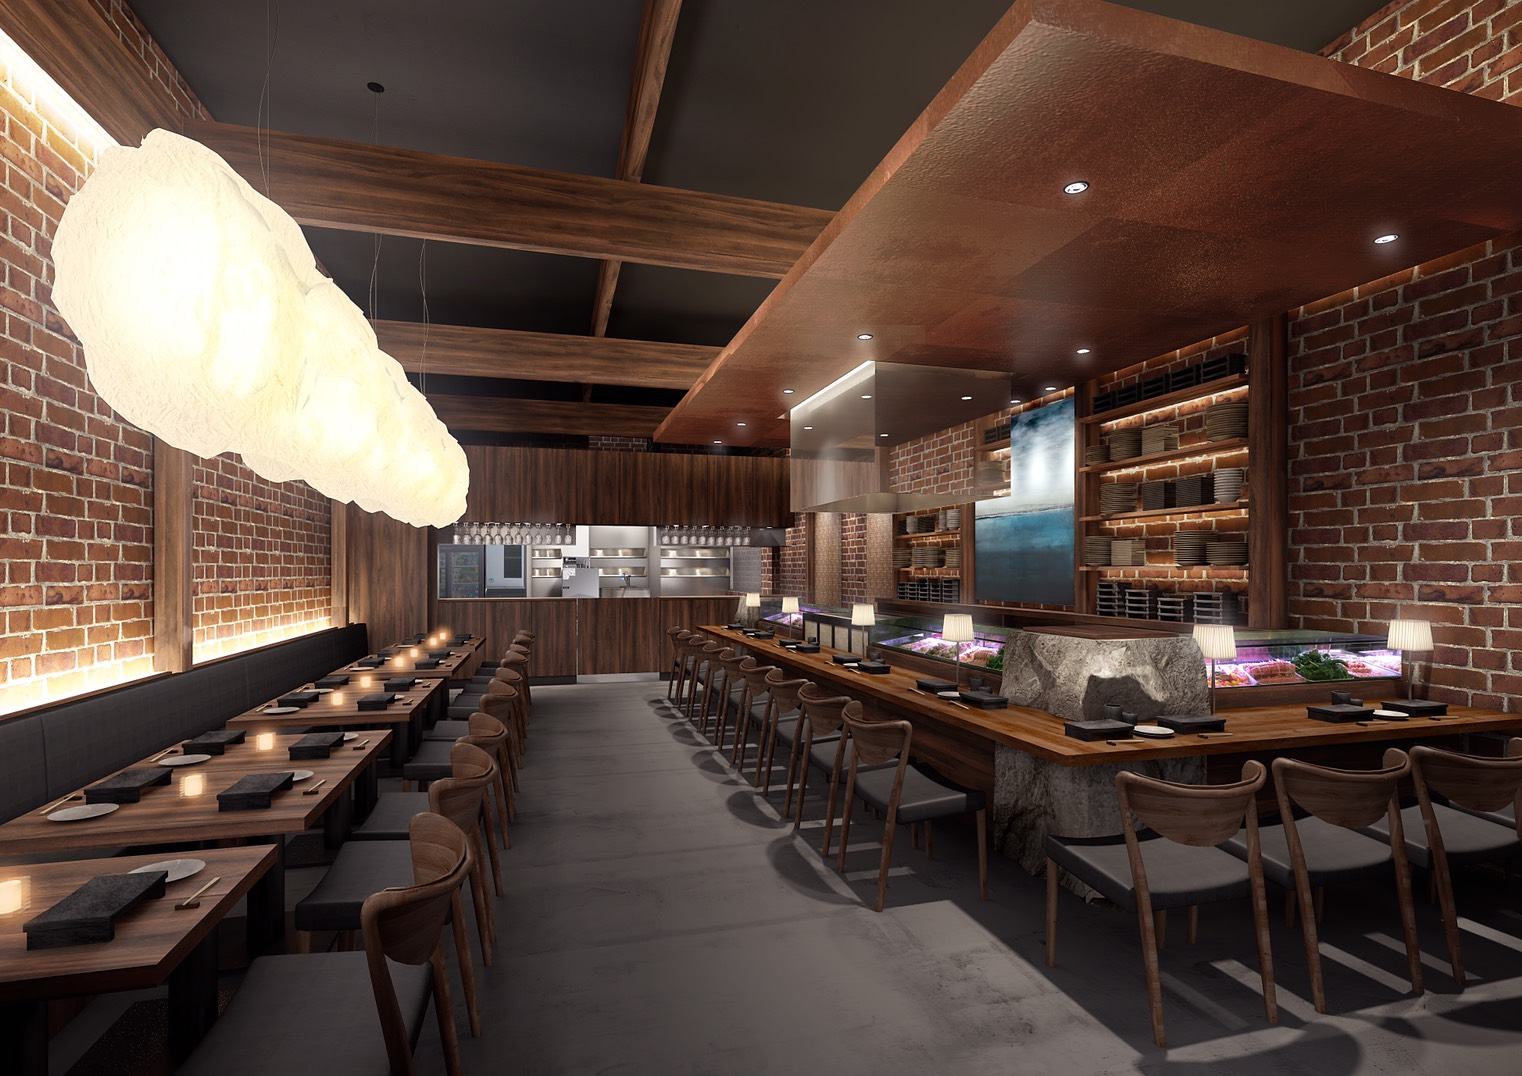 Artist rendering of the interior. Photo courtesy Yakitori Hachibei